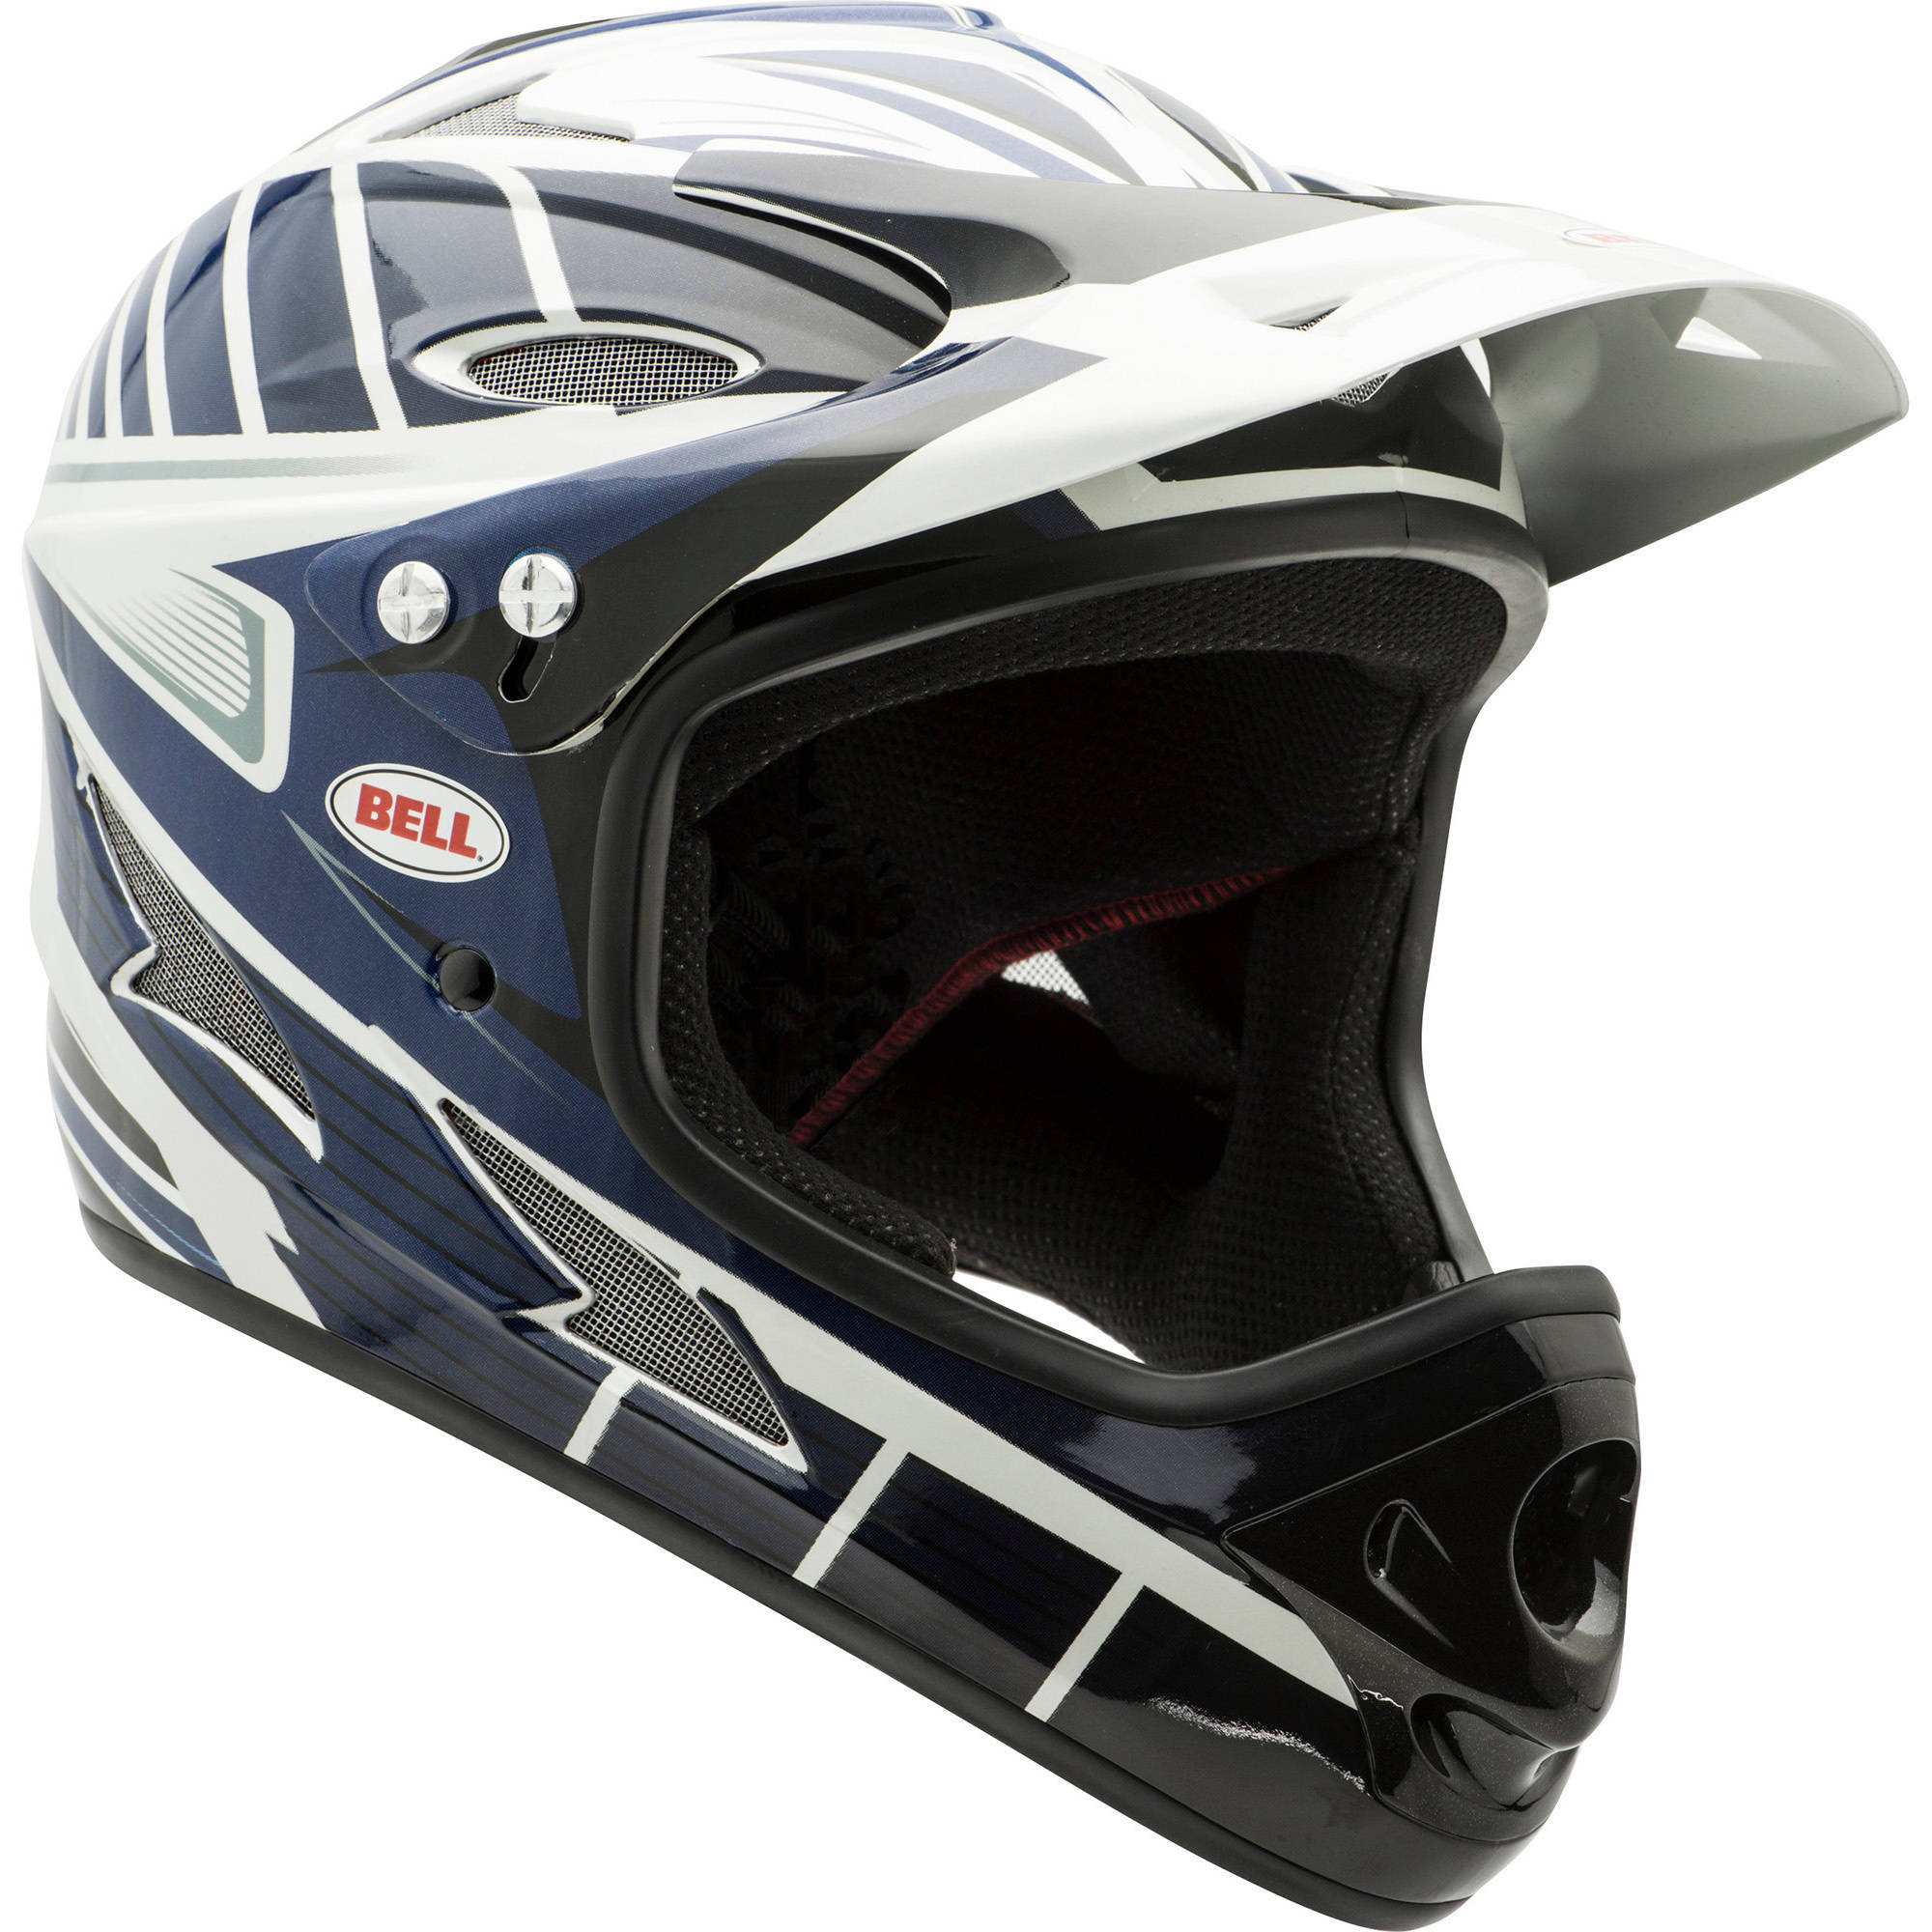 Bell Sports Exodus Youth Full Face Helmet, Black/White